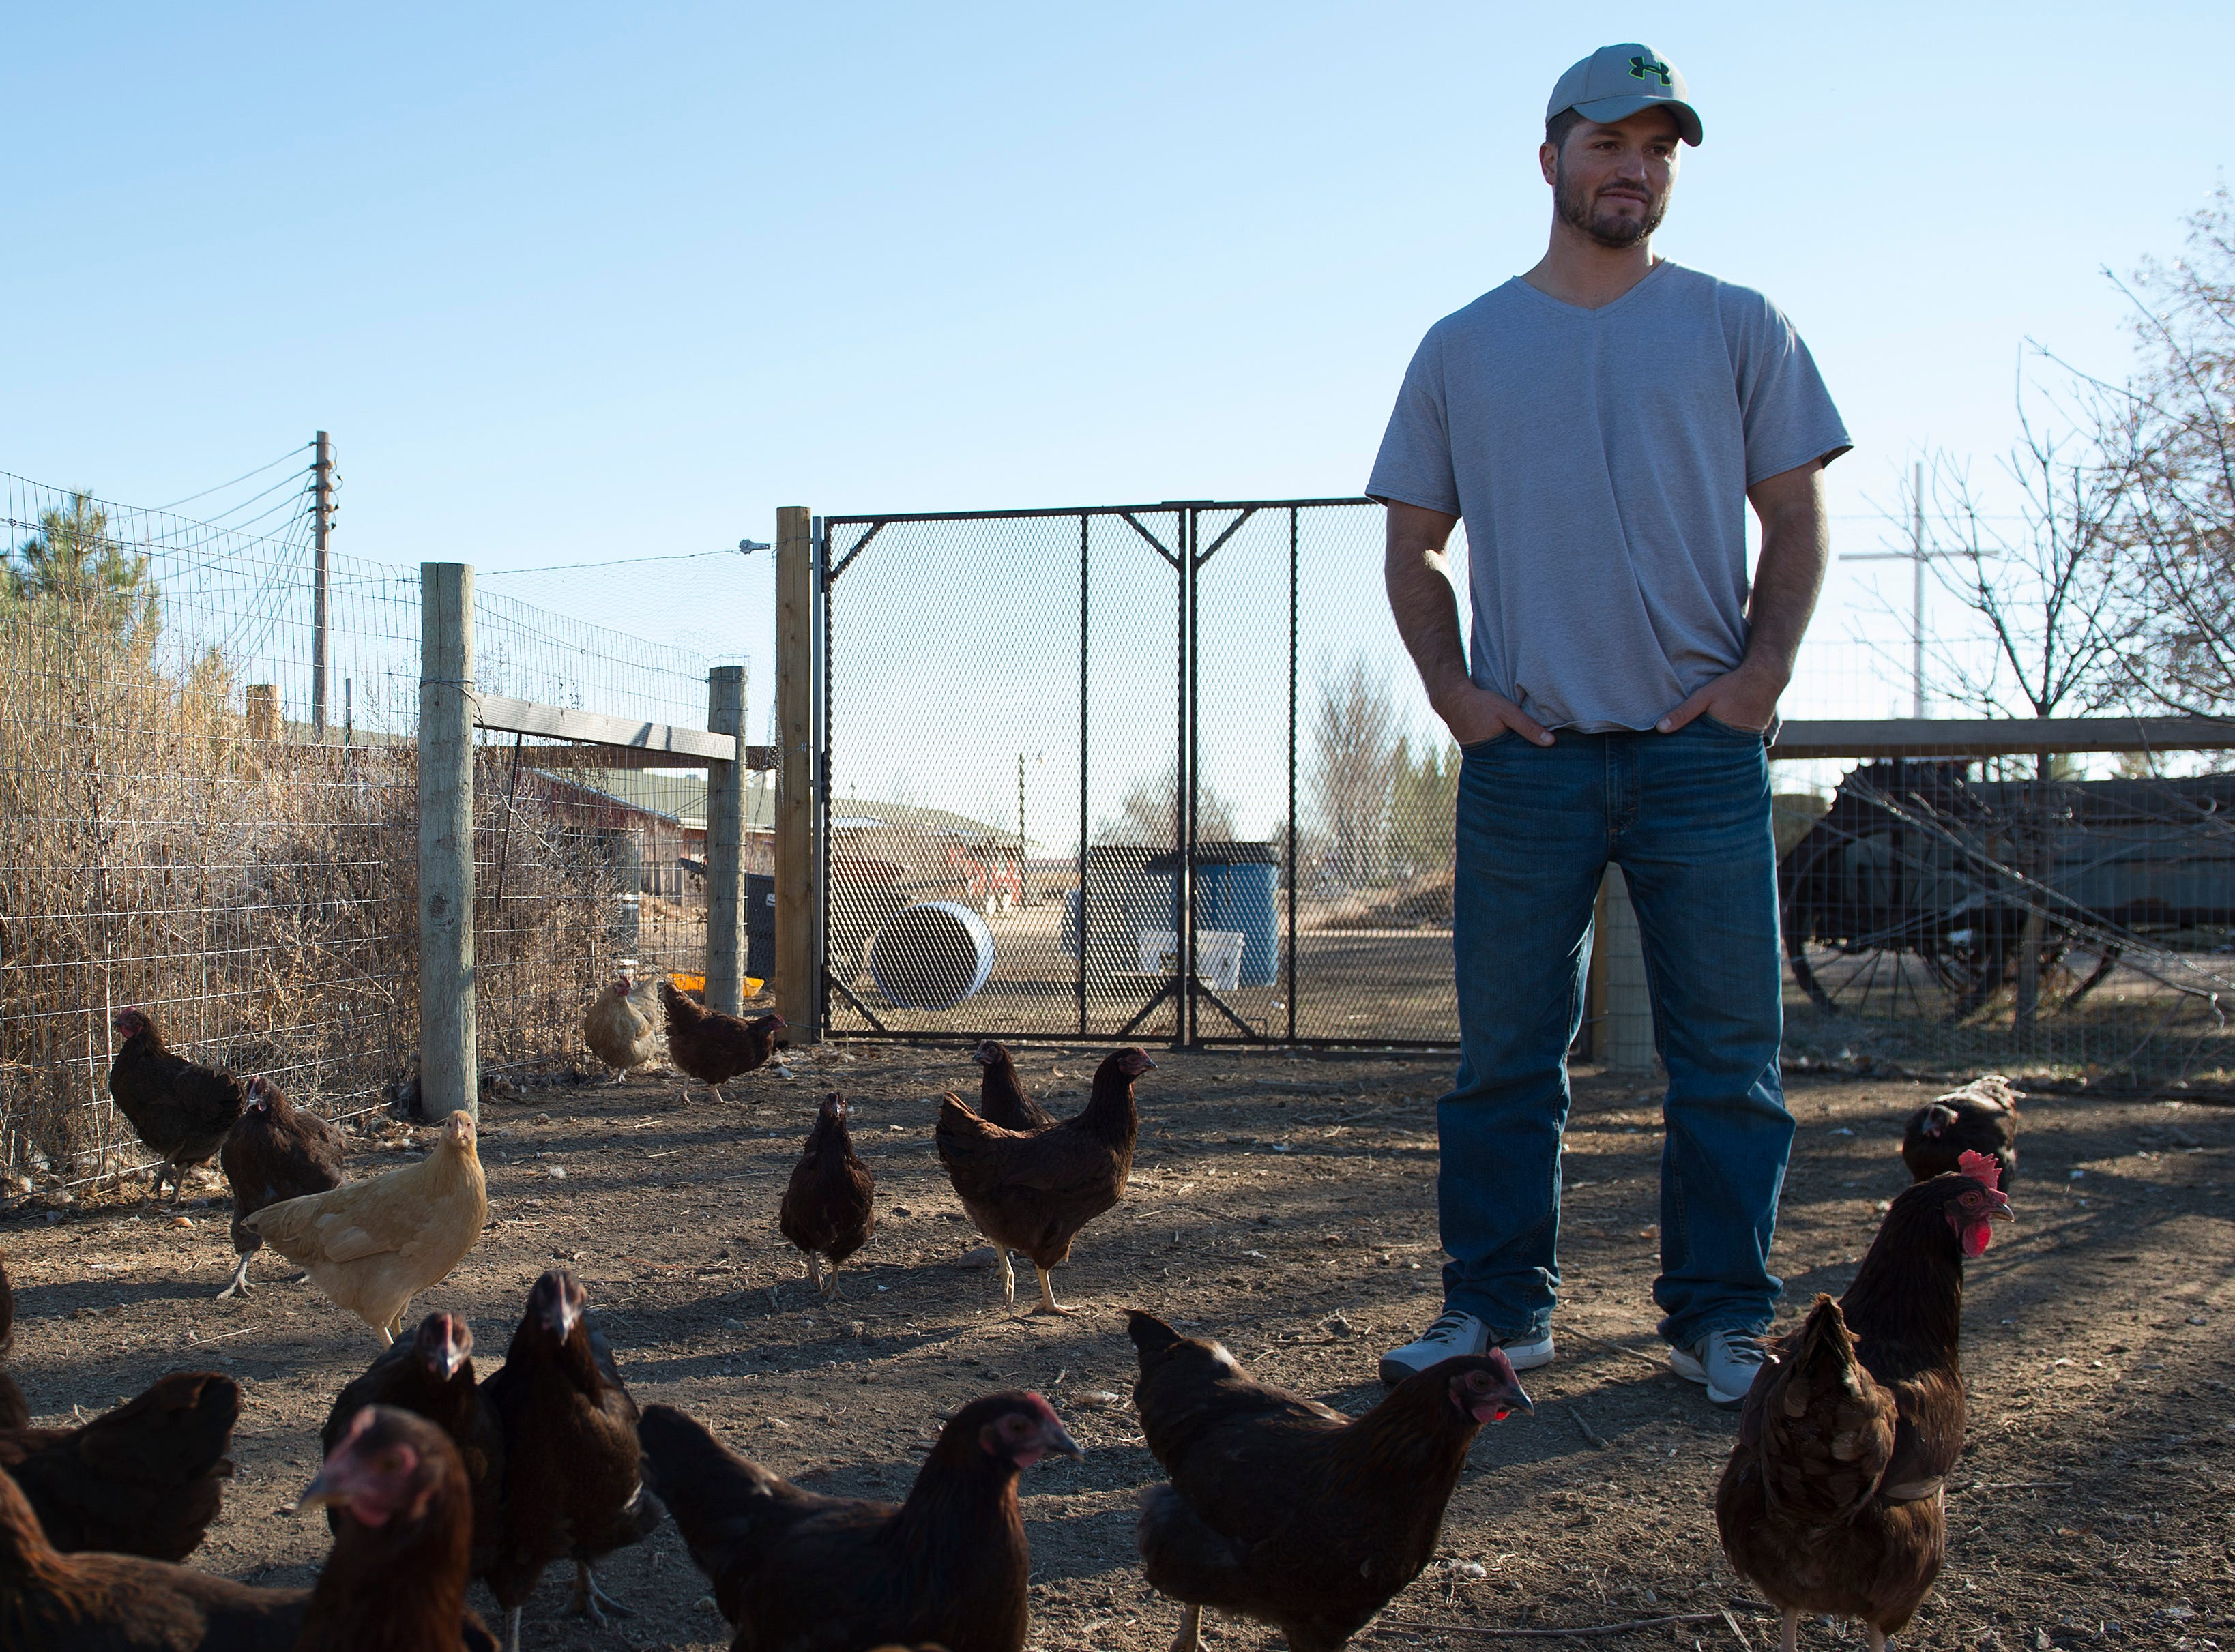 Taylor Reed checks in on the chickens at Harvest Farm in Wellington on Wednesday, November 14, 2018. Reed, from Wiley in southeast Colorado, struggled with addiction for his entire life until this spring when he began living at the rehabilitation facility.